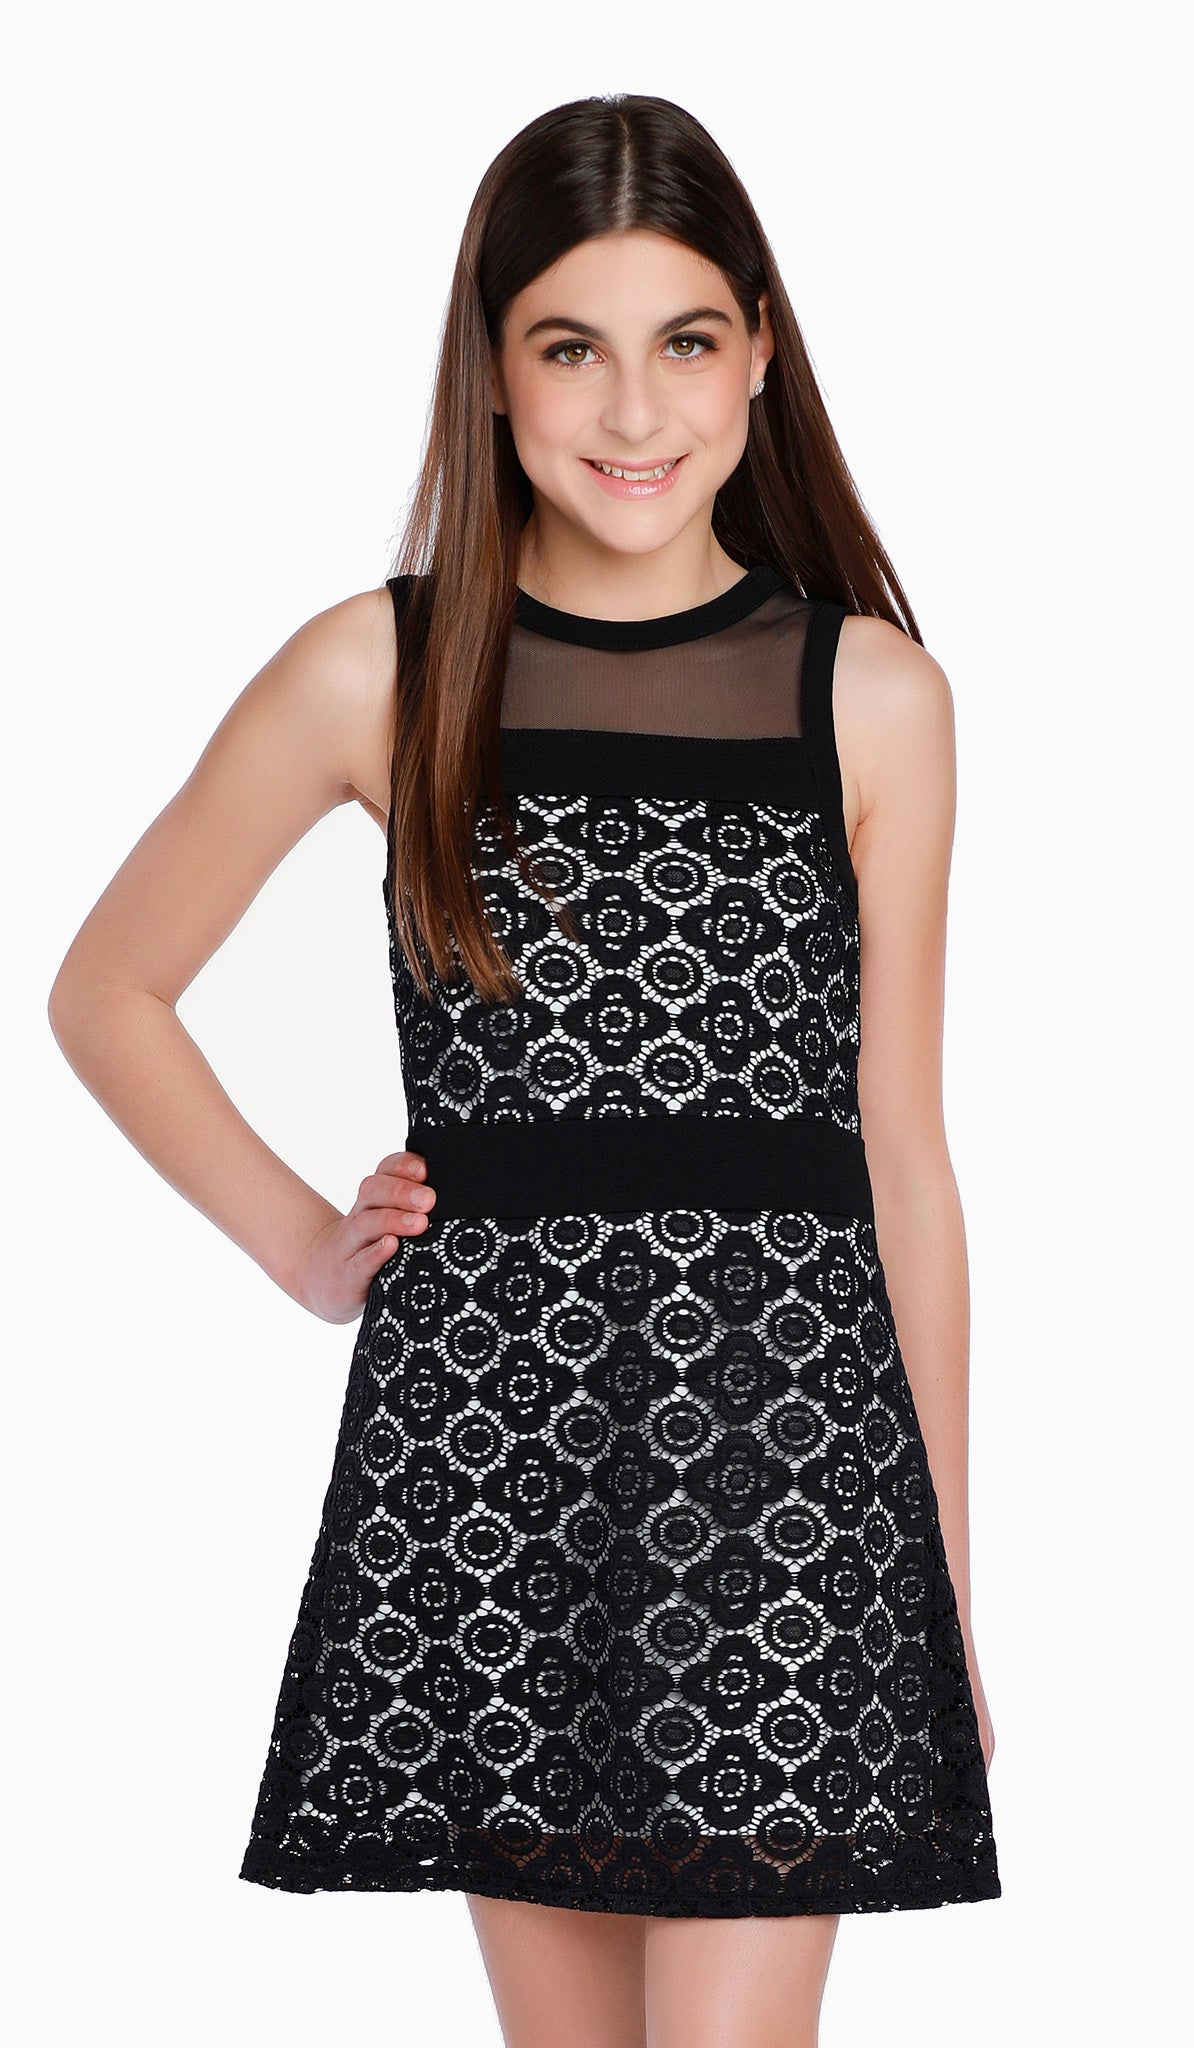 THE LIZ DRESS - Sallymiller.com - [variant title] - | Event & Party Dresses for Tween Girls & Juniors | Weddings Dresses, Bat Mitzvah Dresses, Sweet Sixteen Dresses, Graduation Dresses, Birthday Party Dresses, Bar Mitzvah Dresses, Cotillion Dresses